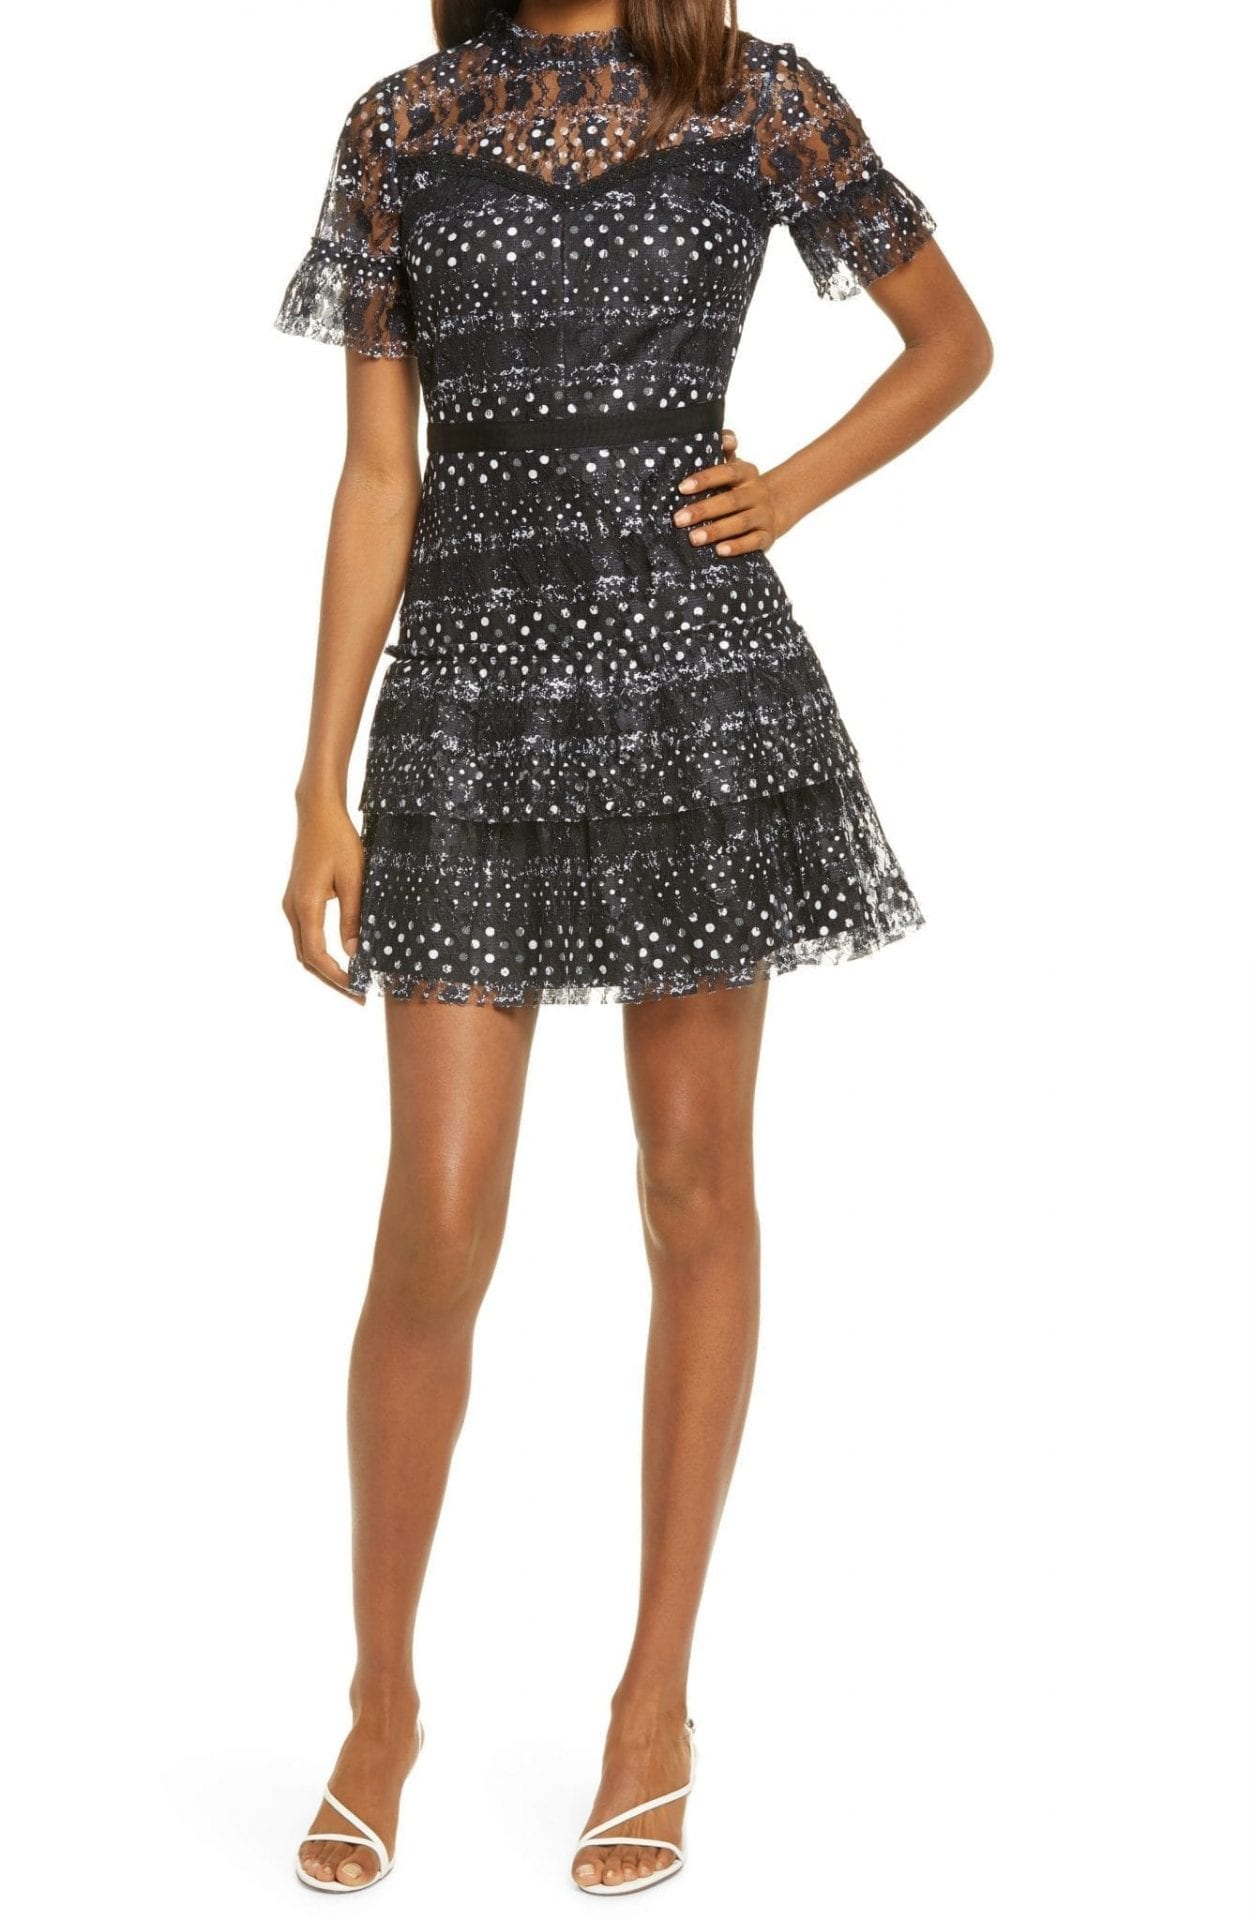 ADELYN RAE Suzette Lace Ruffle Cocktail Dress